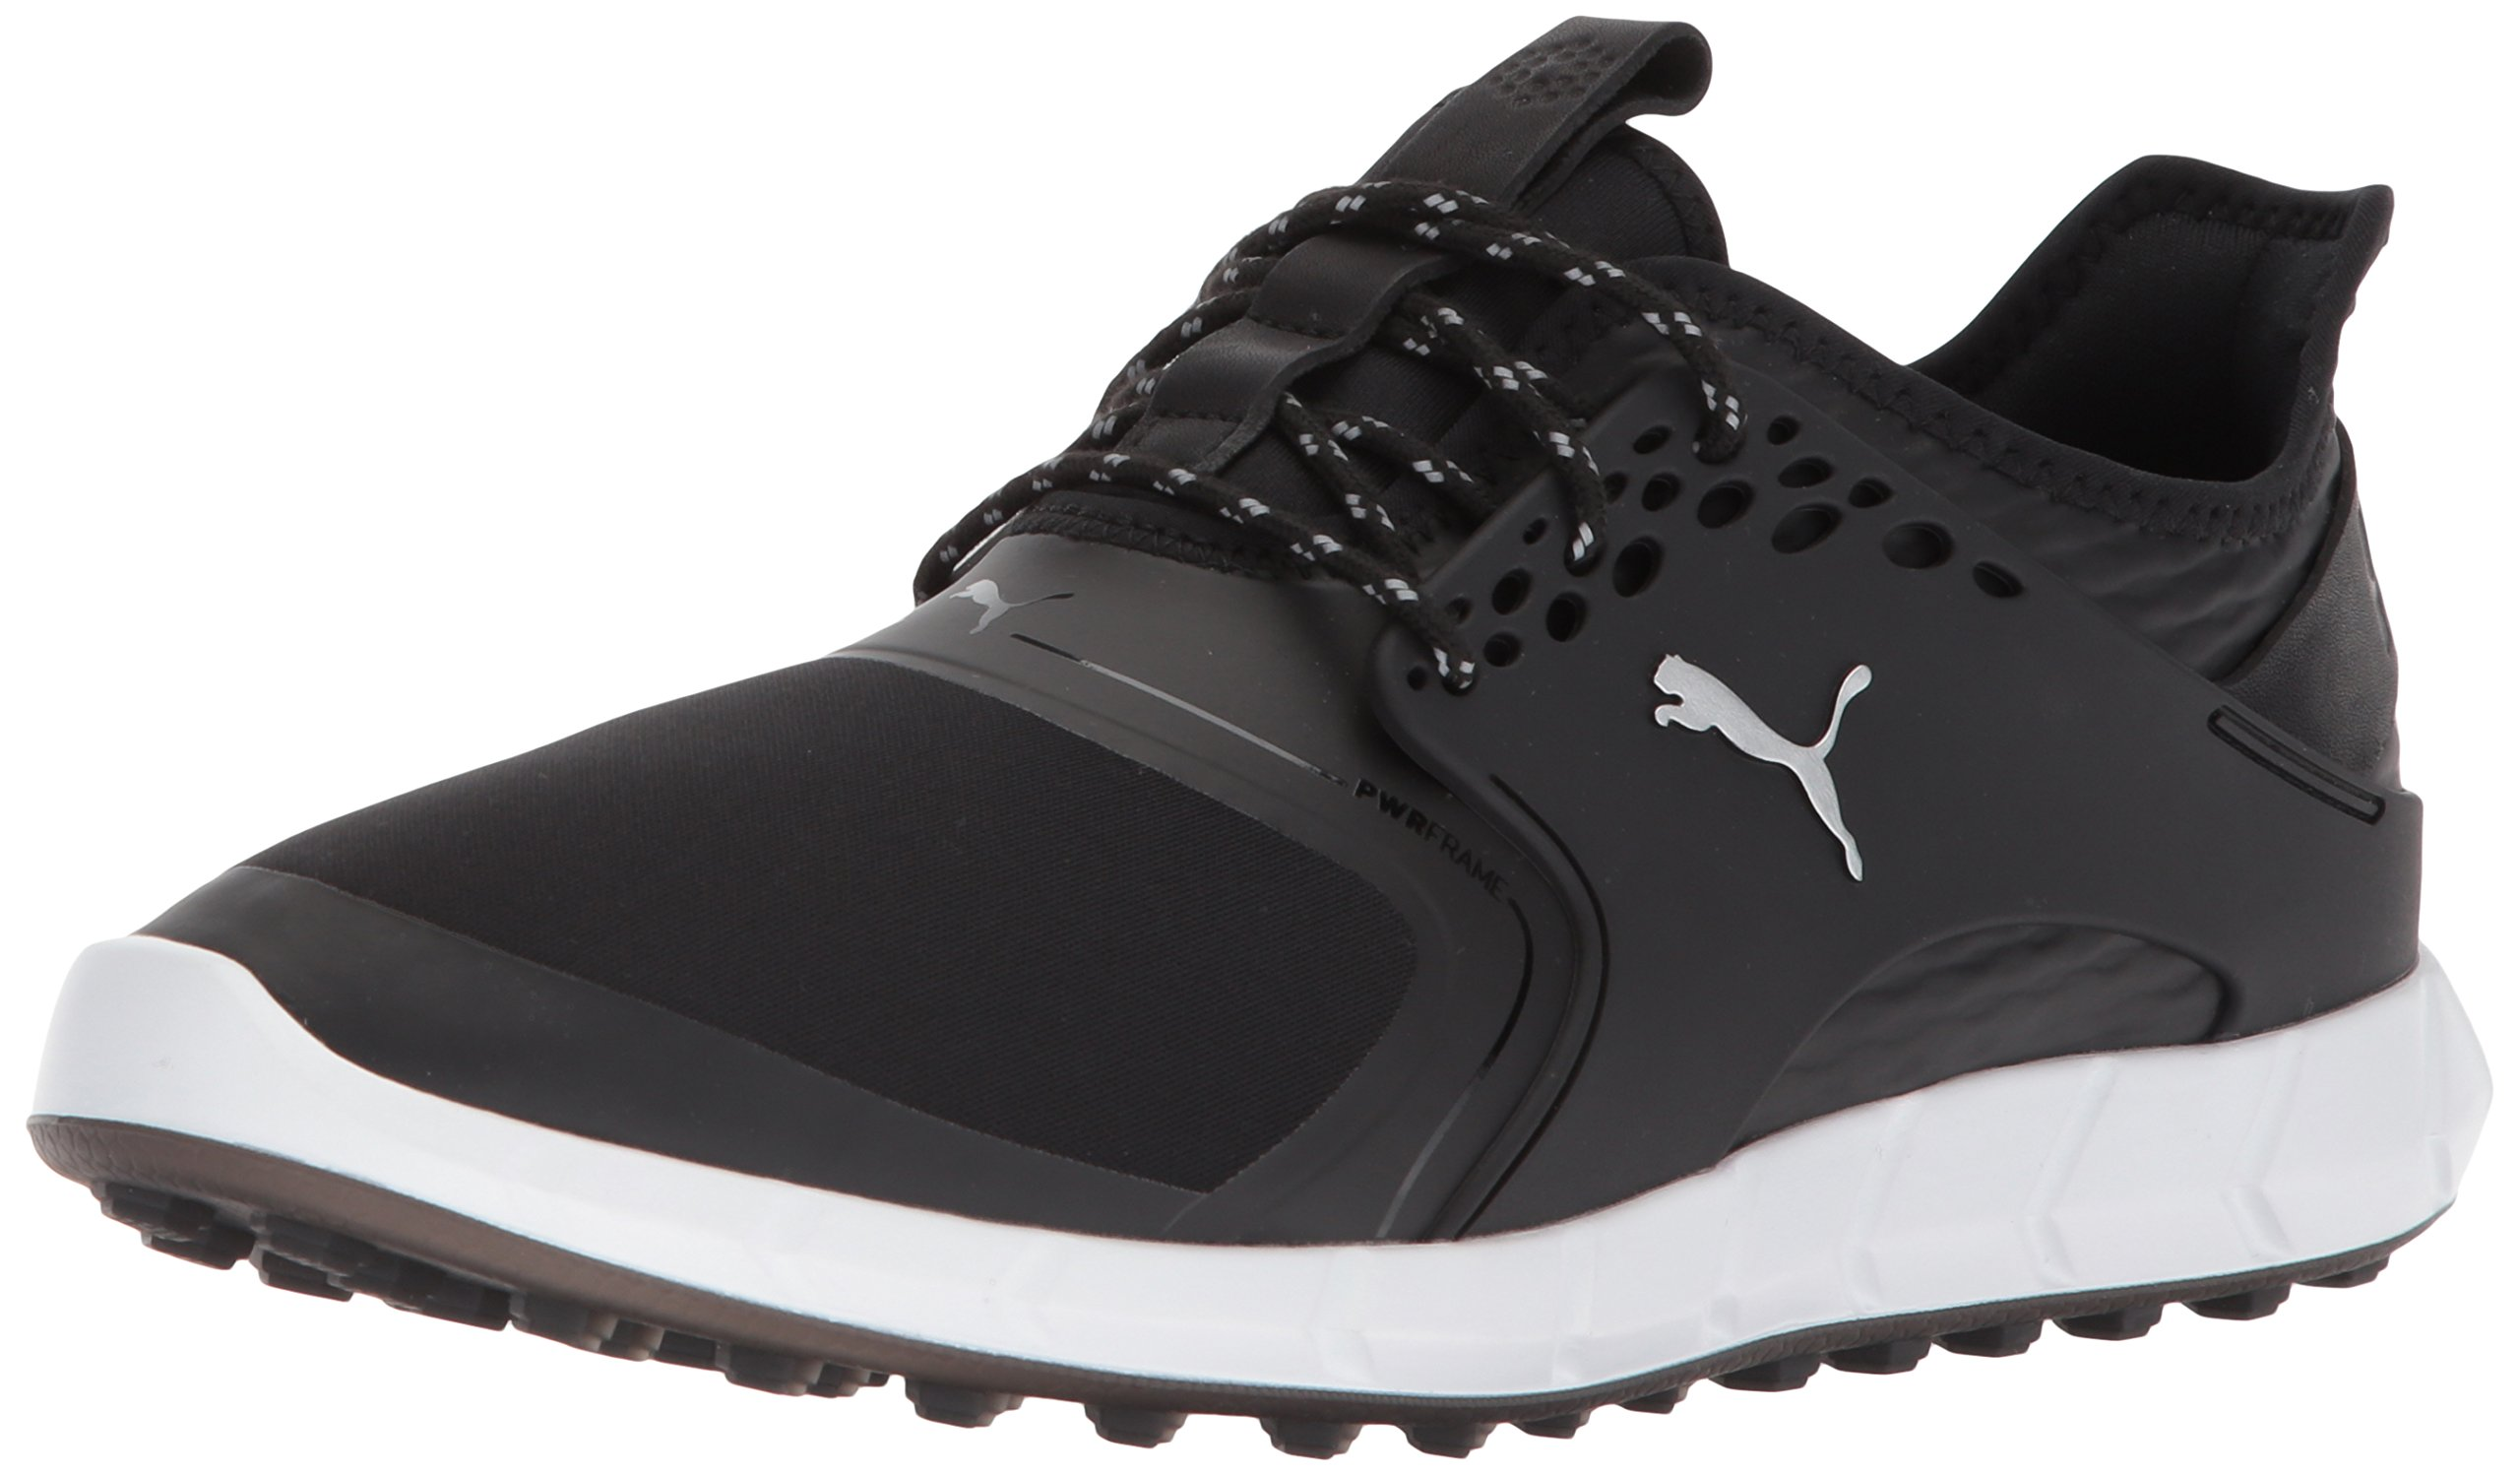 Puma Golf Men's Ignite Pwrsport Golf Shoe, Black/Silver, 7 Medium US